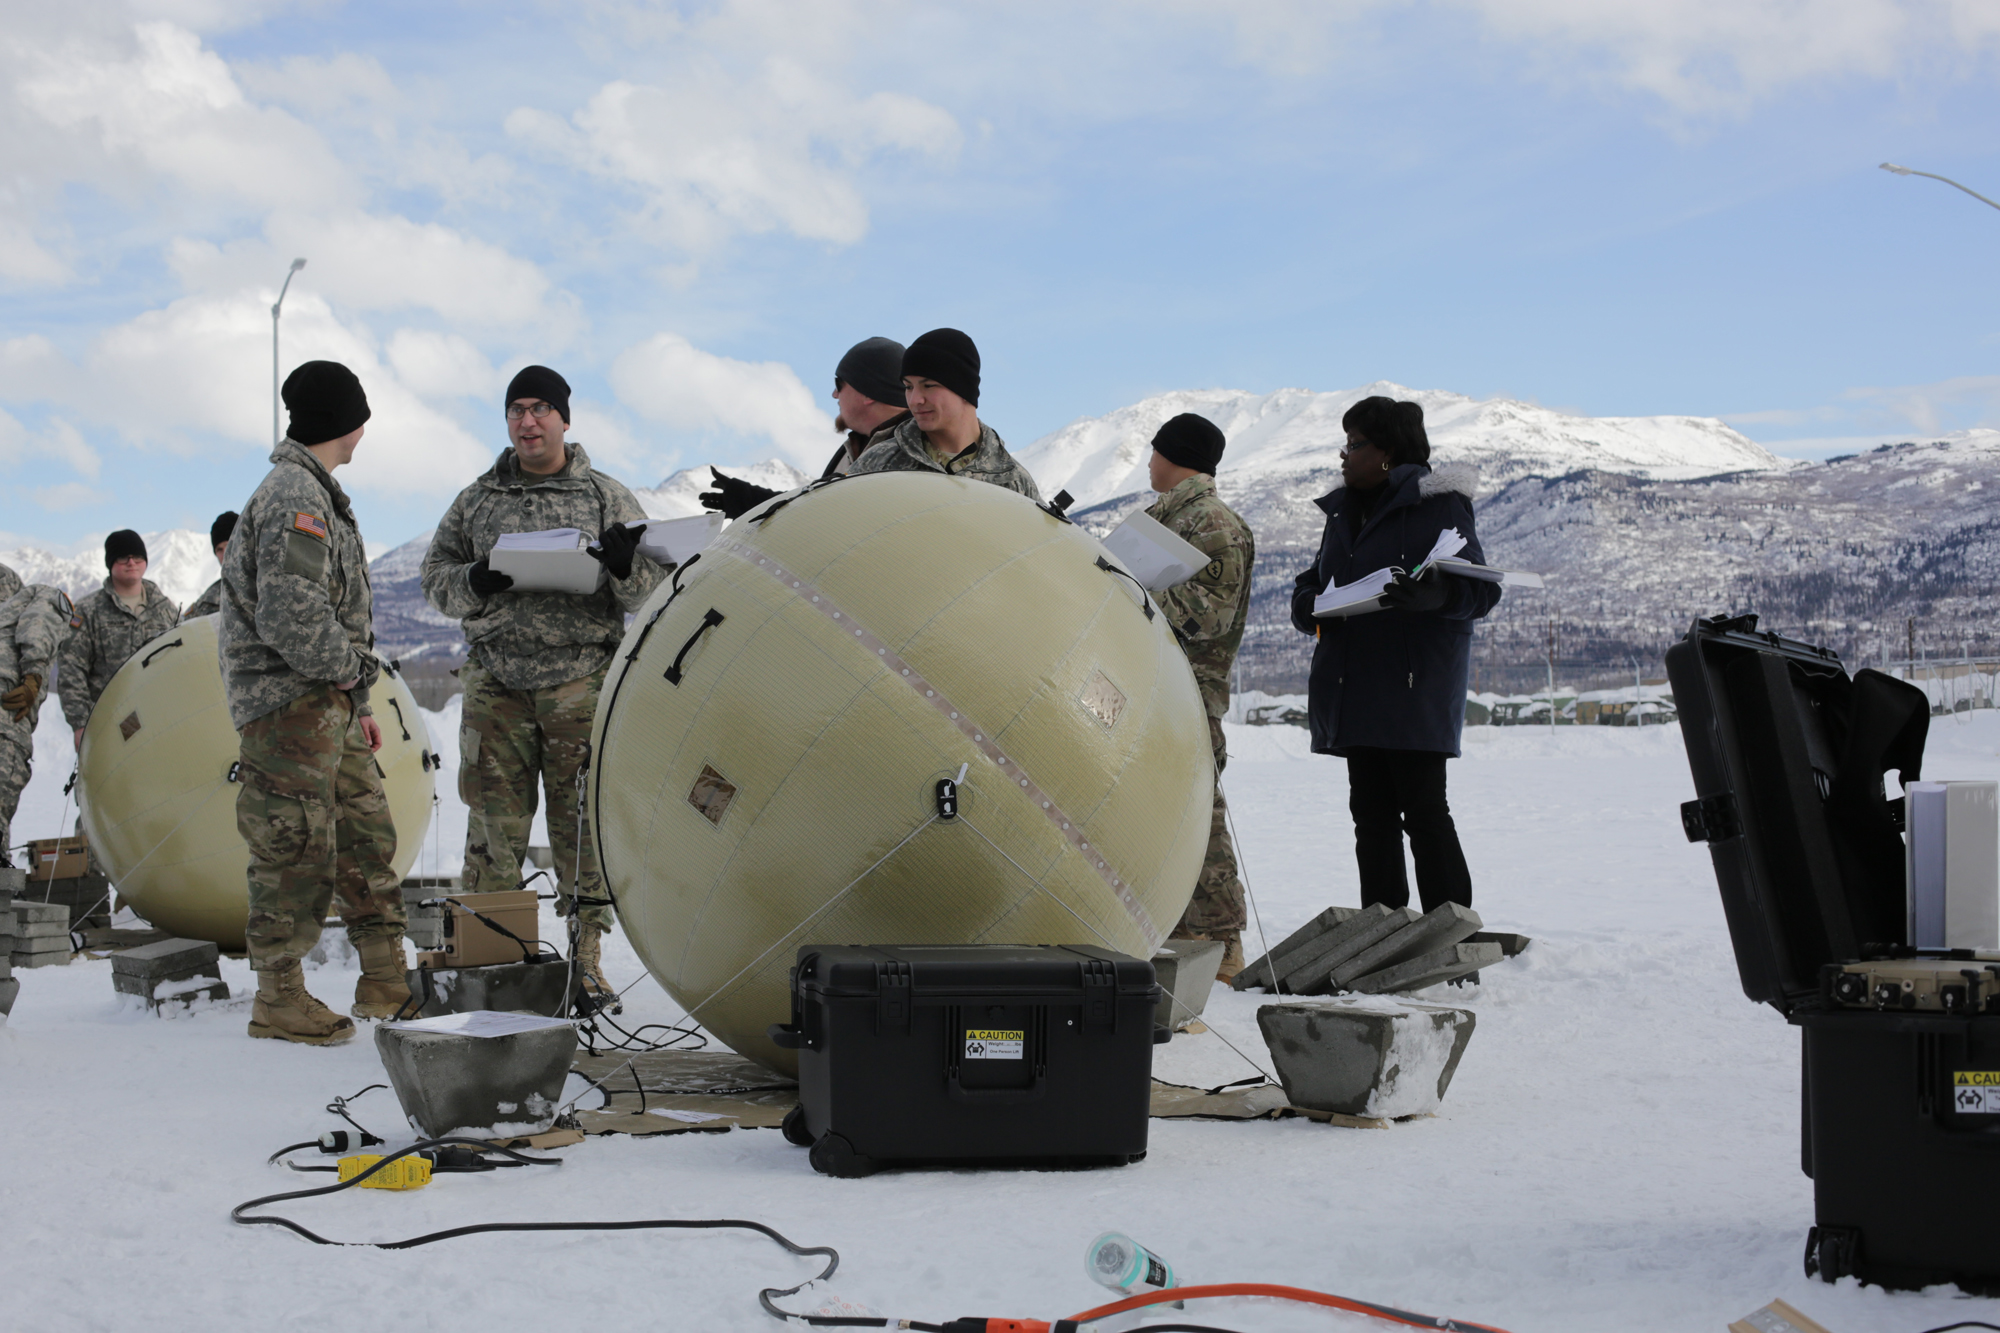 Soldiers use the technical manual to troubleshoot procedures to correct faults inflicted on their system as part of the March test at Joint Base Elmendorf-Richardson, Alaska. Early feedback indicates that non-specialist users can easily set up the terminals, use the system to access the tactical network, and troubleshoot issues using the manual. (Photo by Staff Sgt. Pedro Garcia Bibian, 55th Signal Company (Combat Camera))